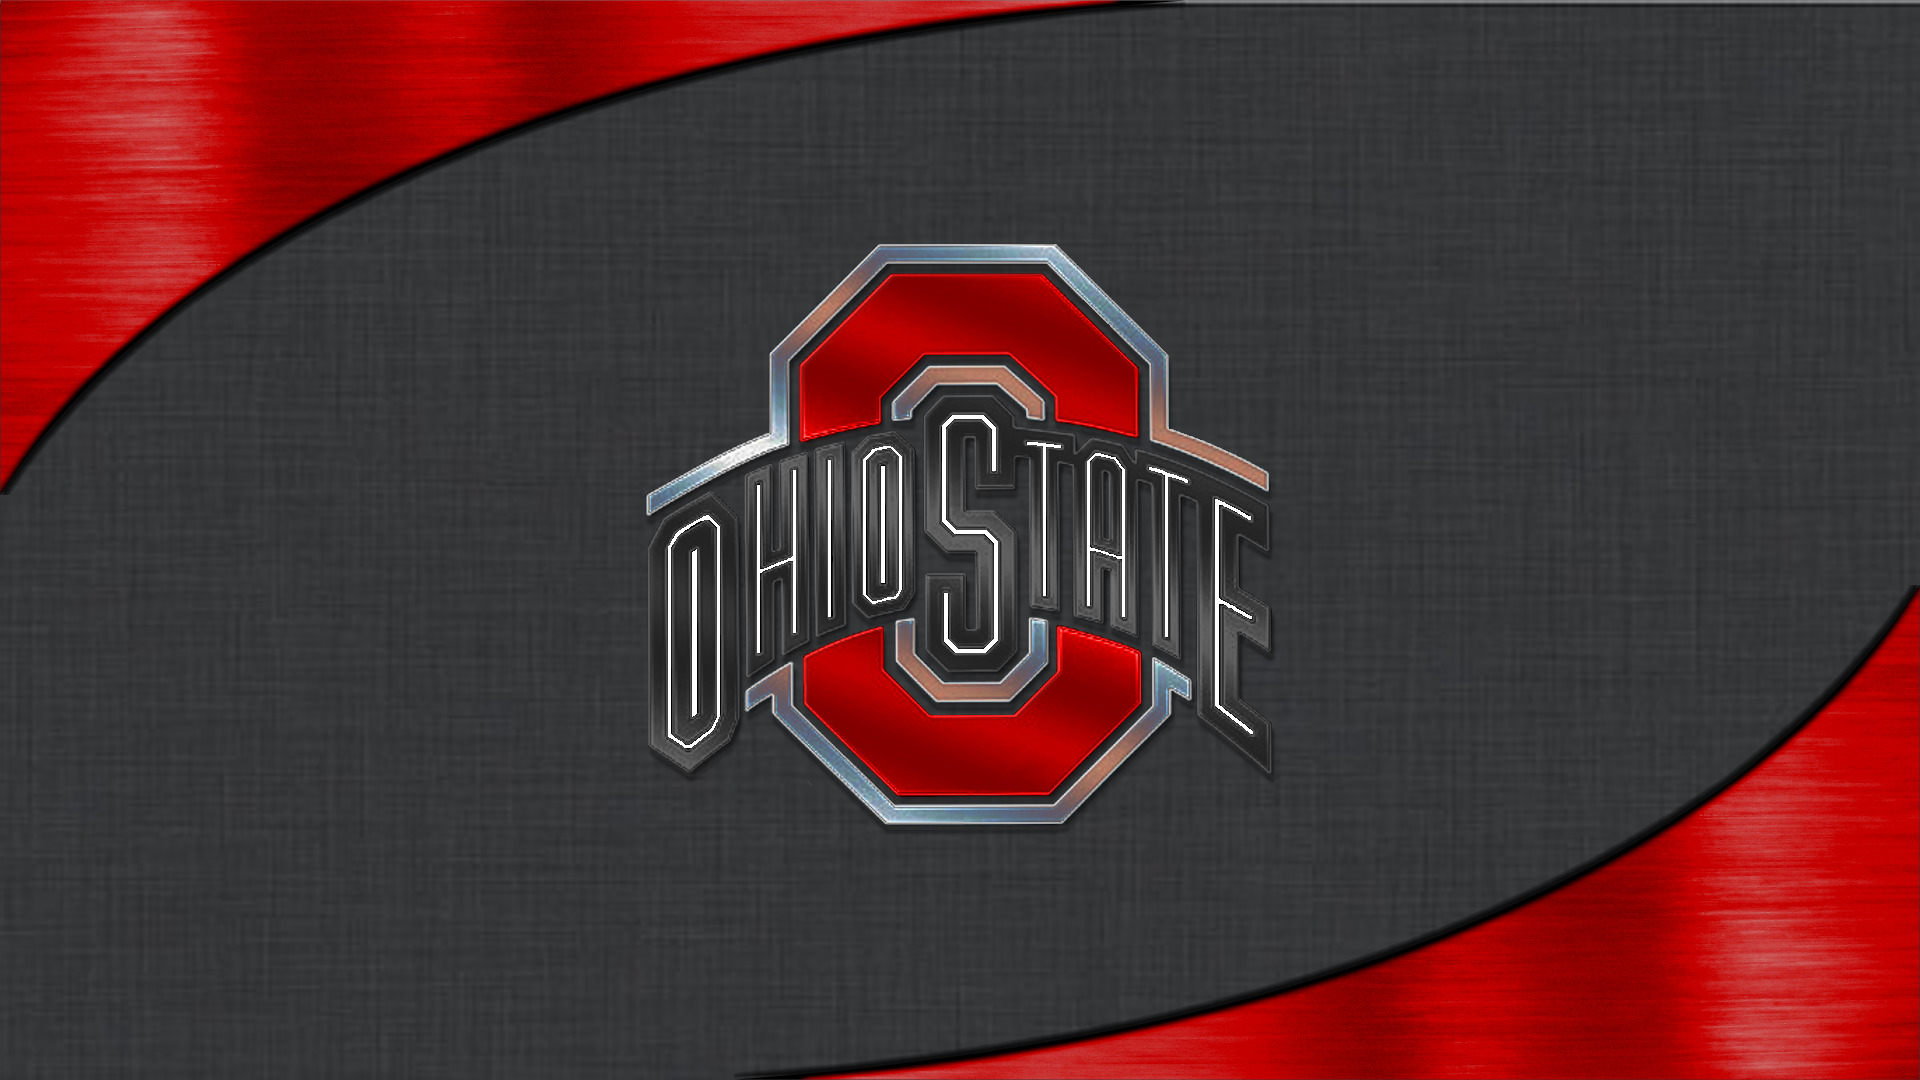 OSU Wallpaper 650   Ohio State Football Wallpaper 35112652 1920x1080